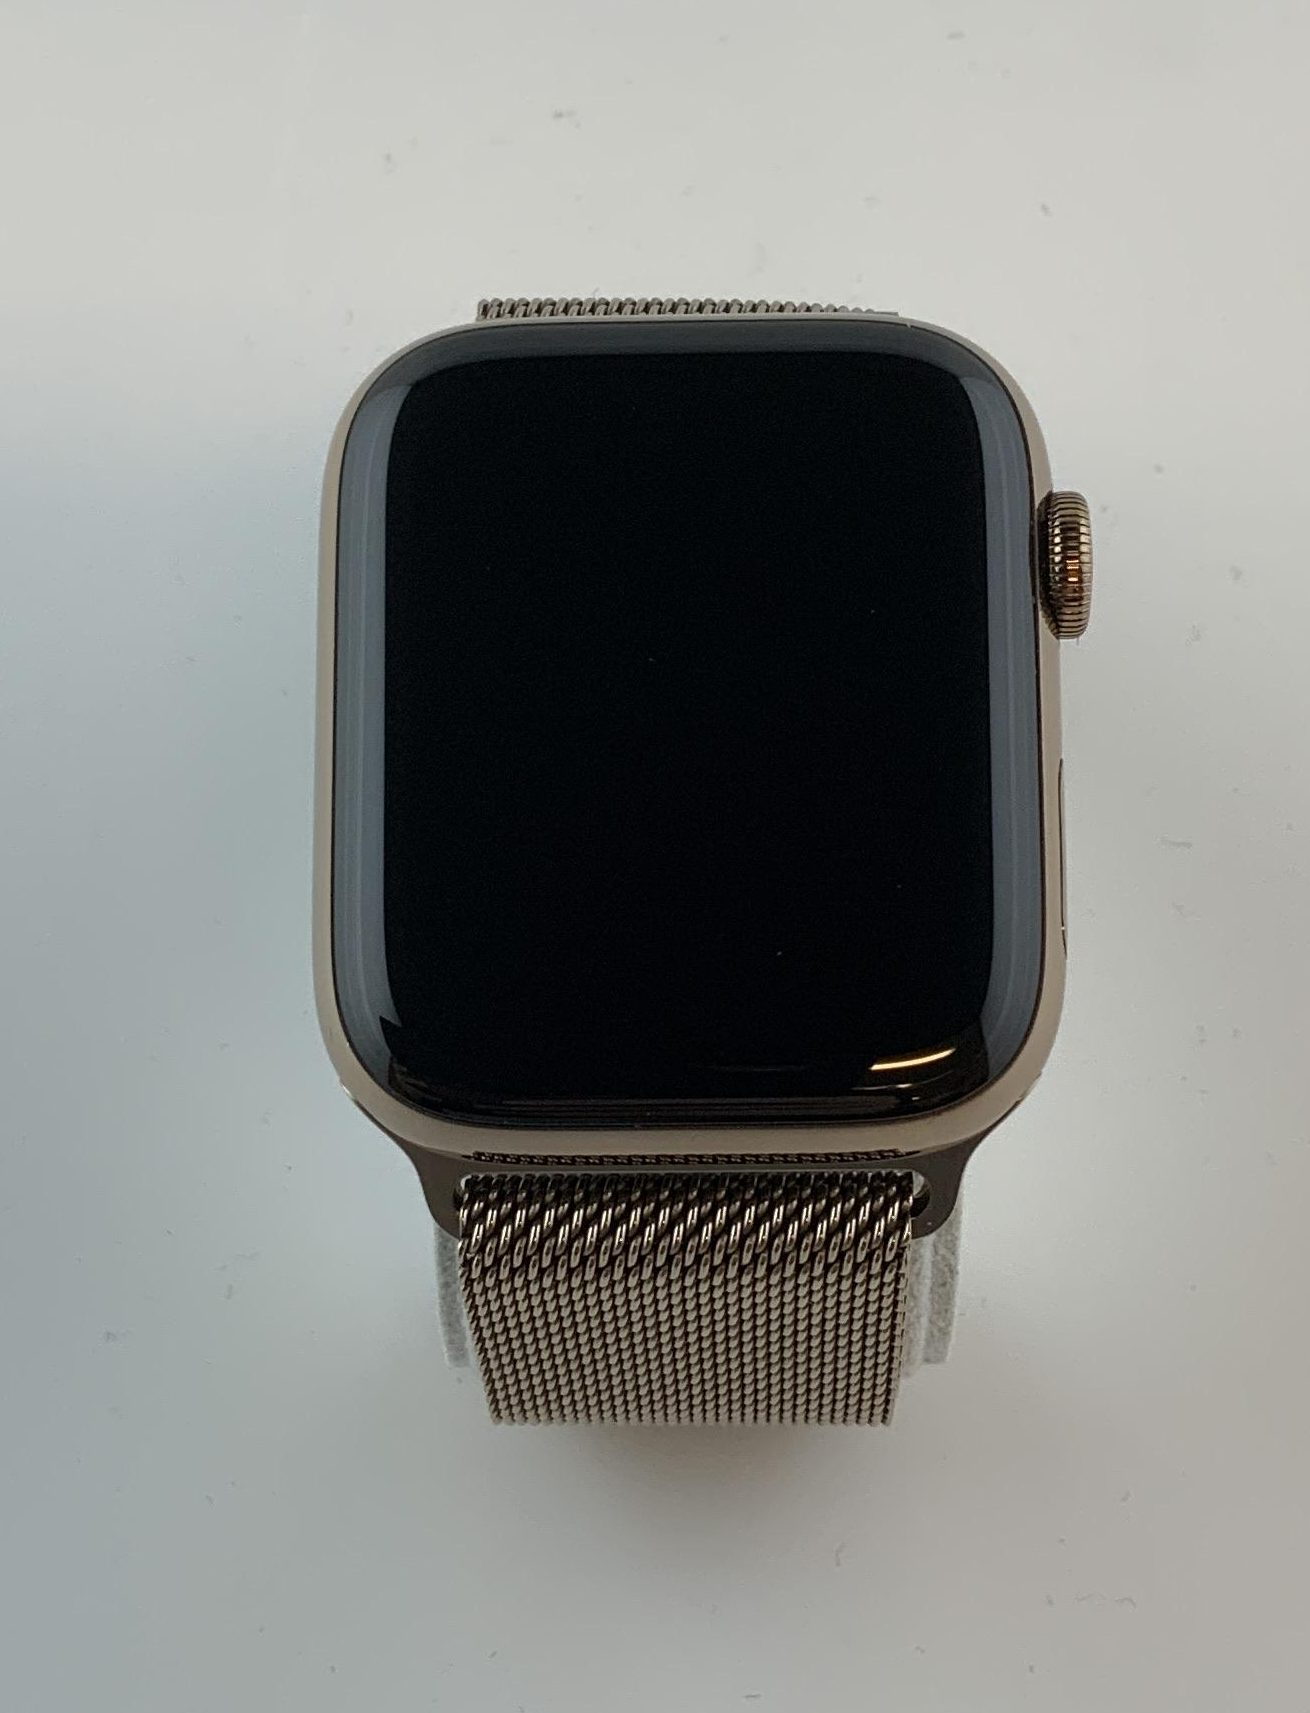 Watch Series 5 Steel Cellular (44mm), Gold, image 1